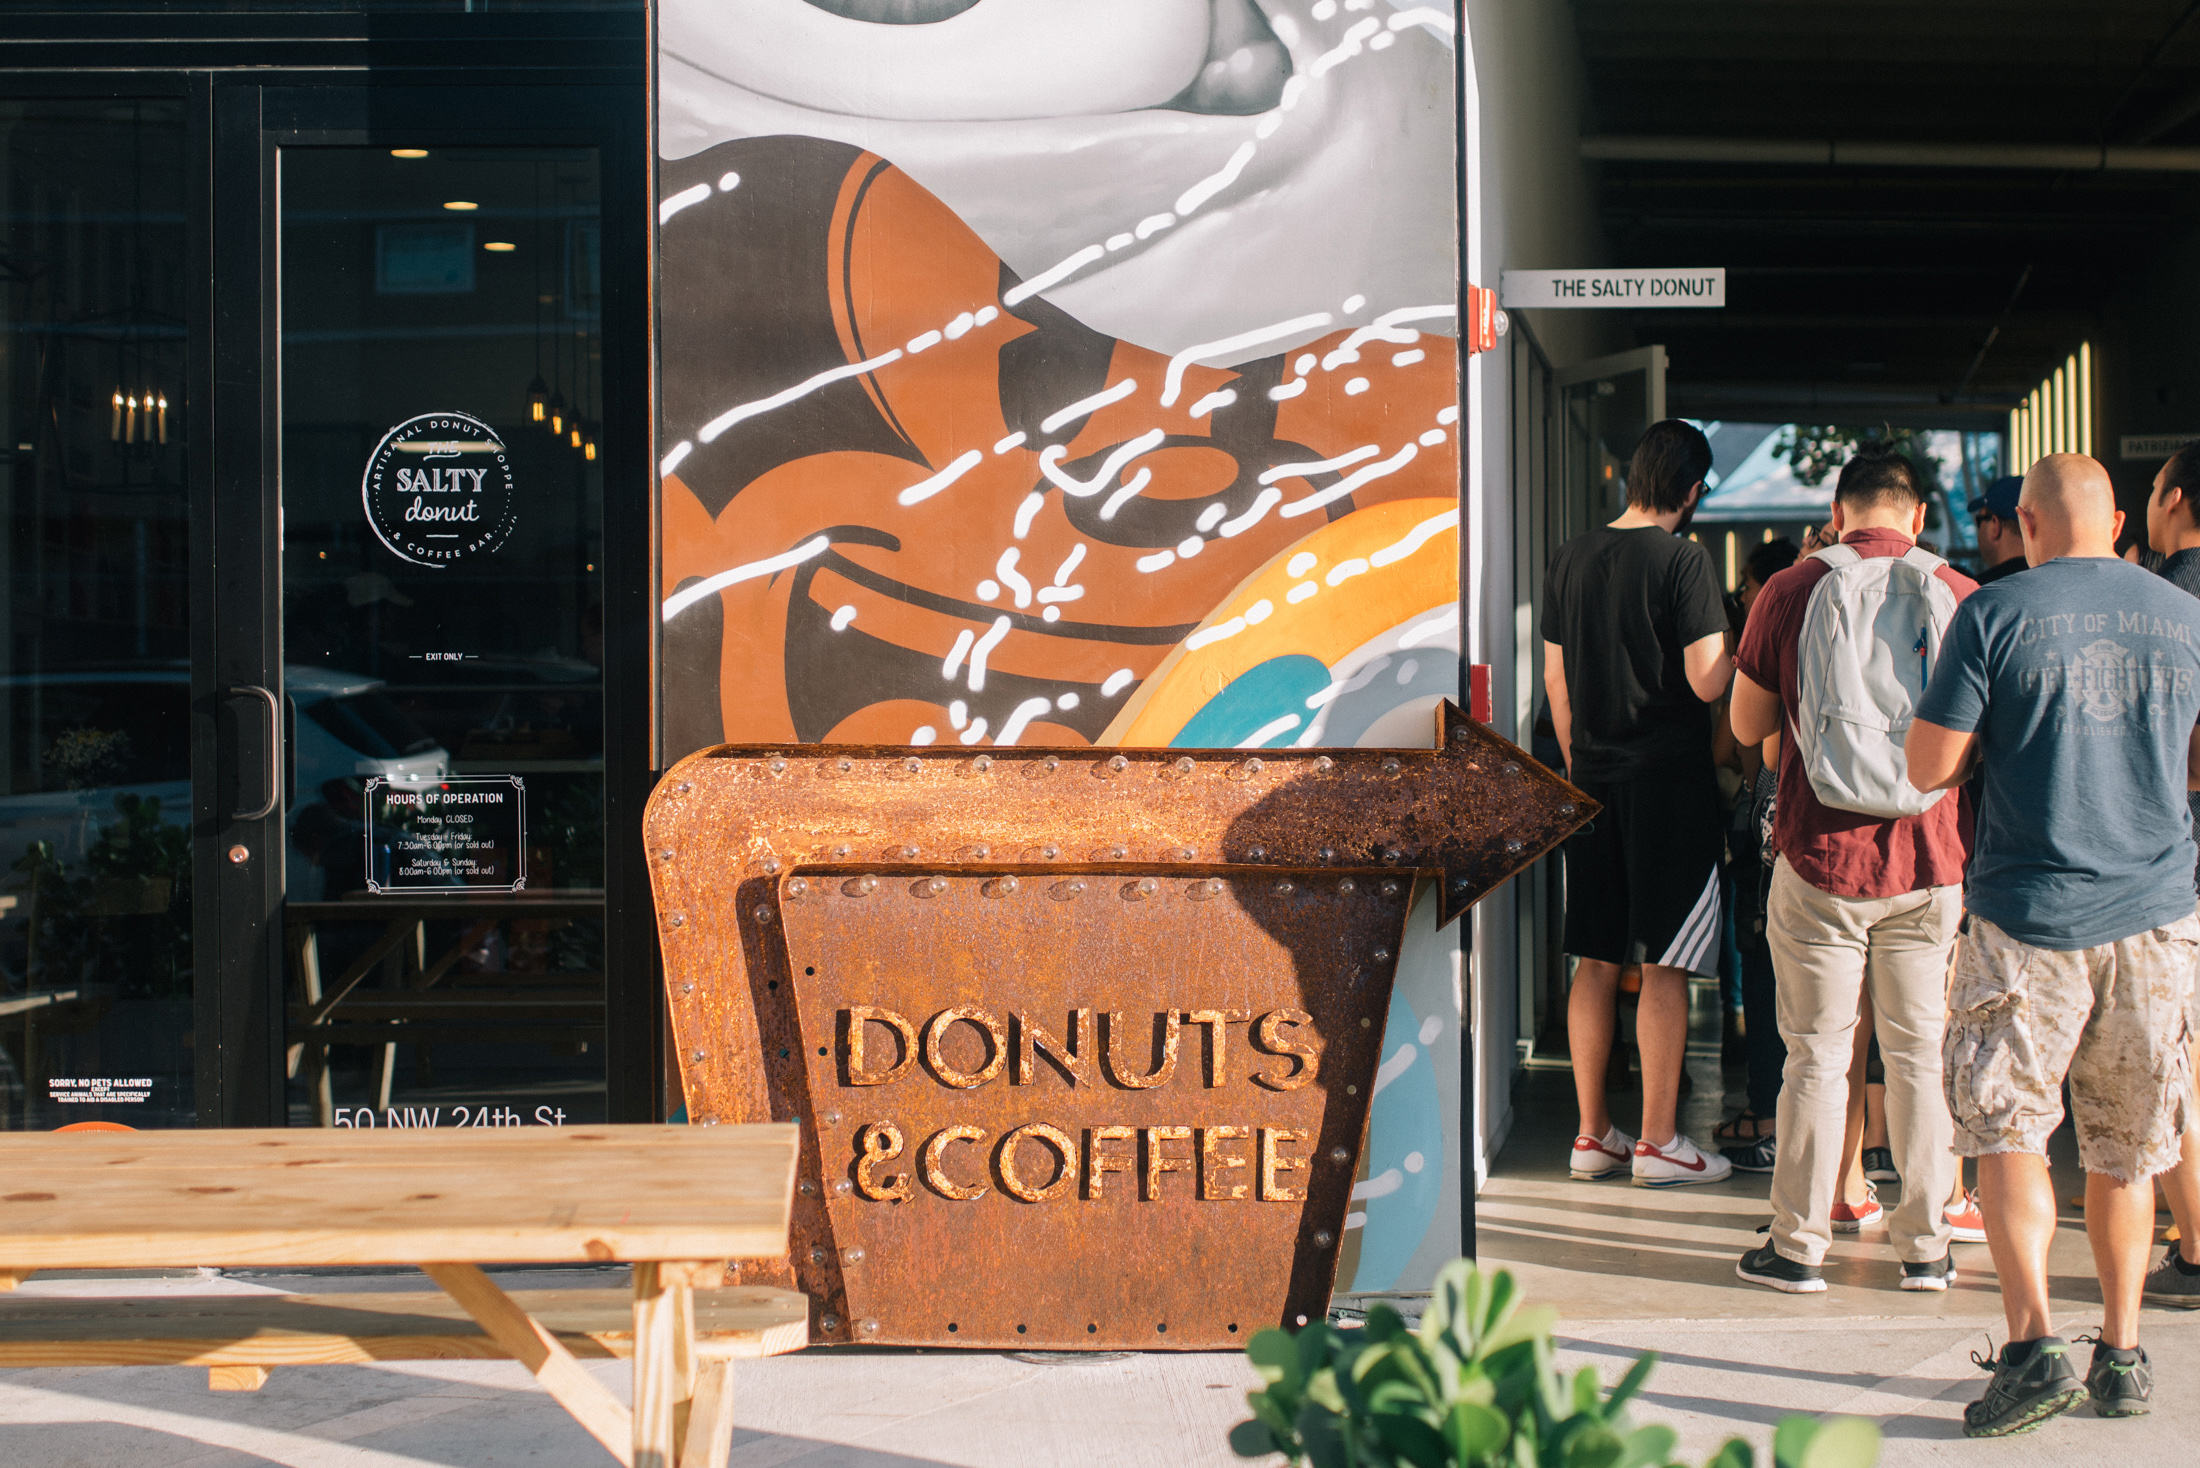 Outside The Salty Donut in Wynwood